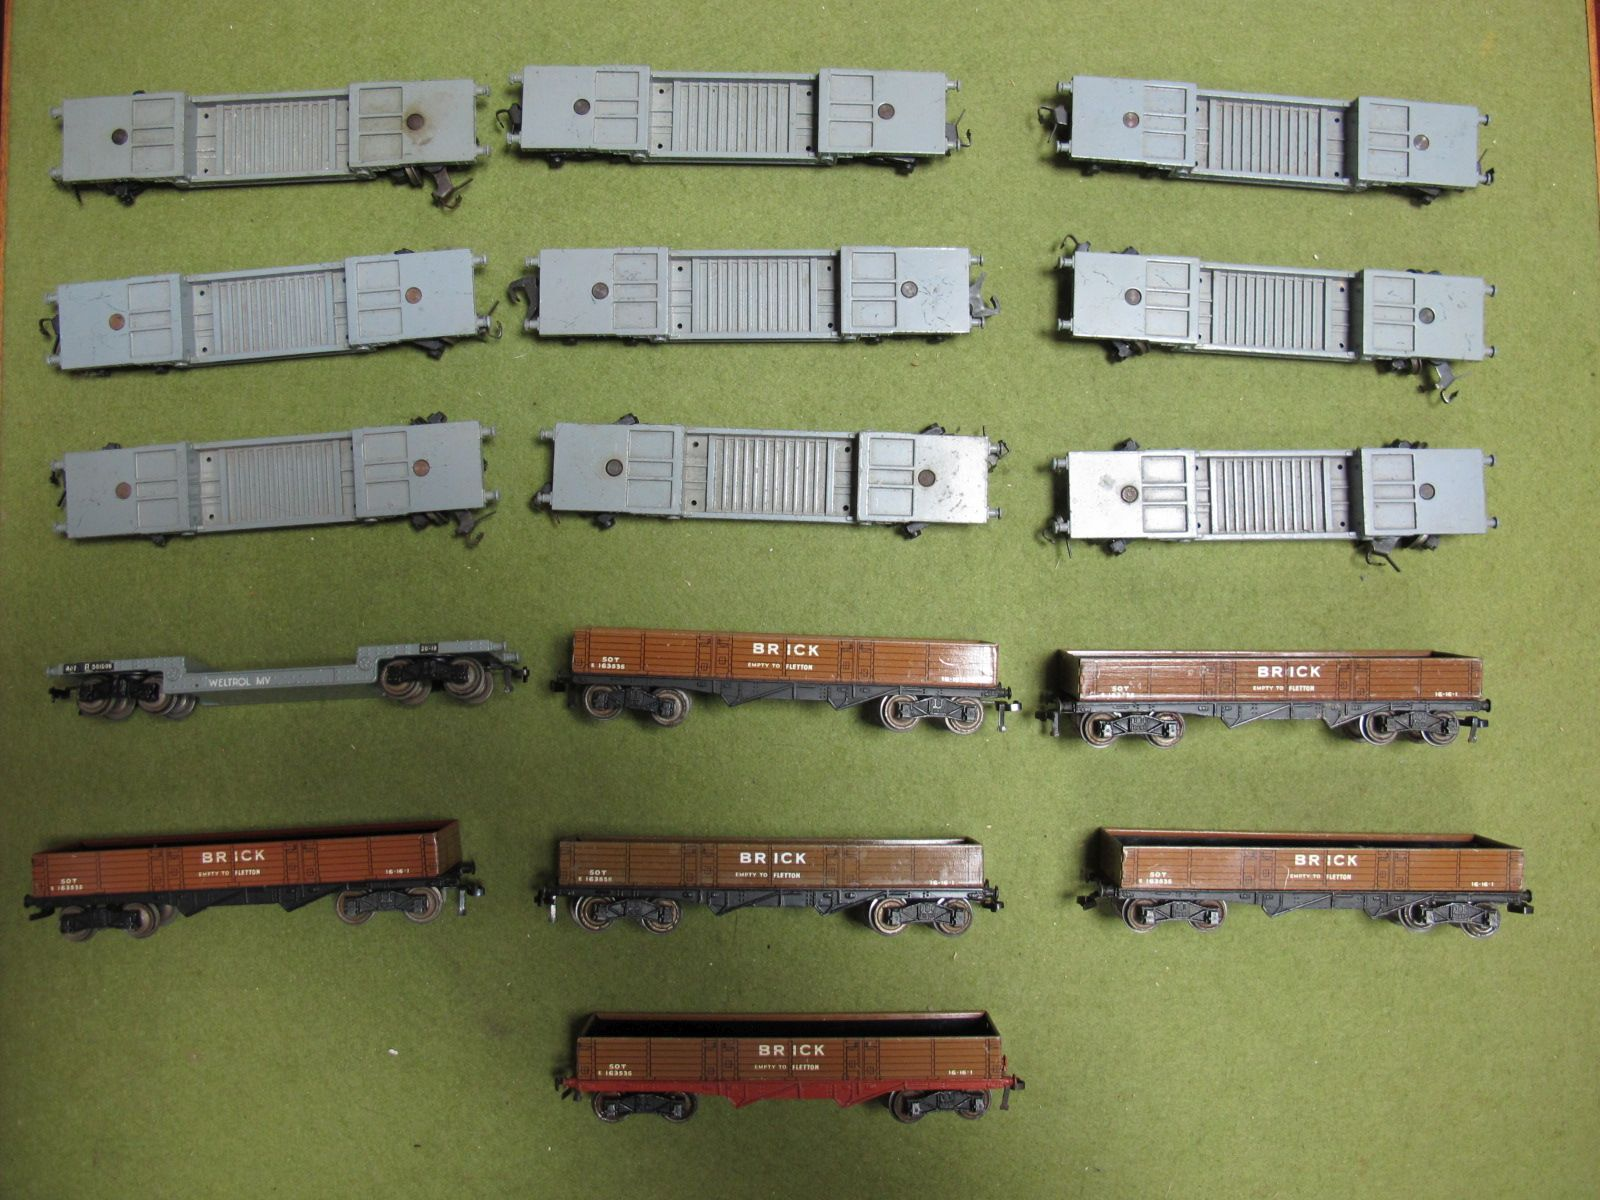 Lot 22 - Sixteen Hornby Dublo Three Rail Rolling Stock Wagons, comprising of six #32050 Eight Wheeled Brick